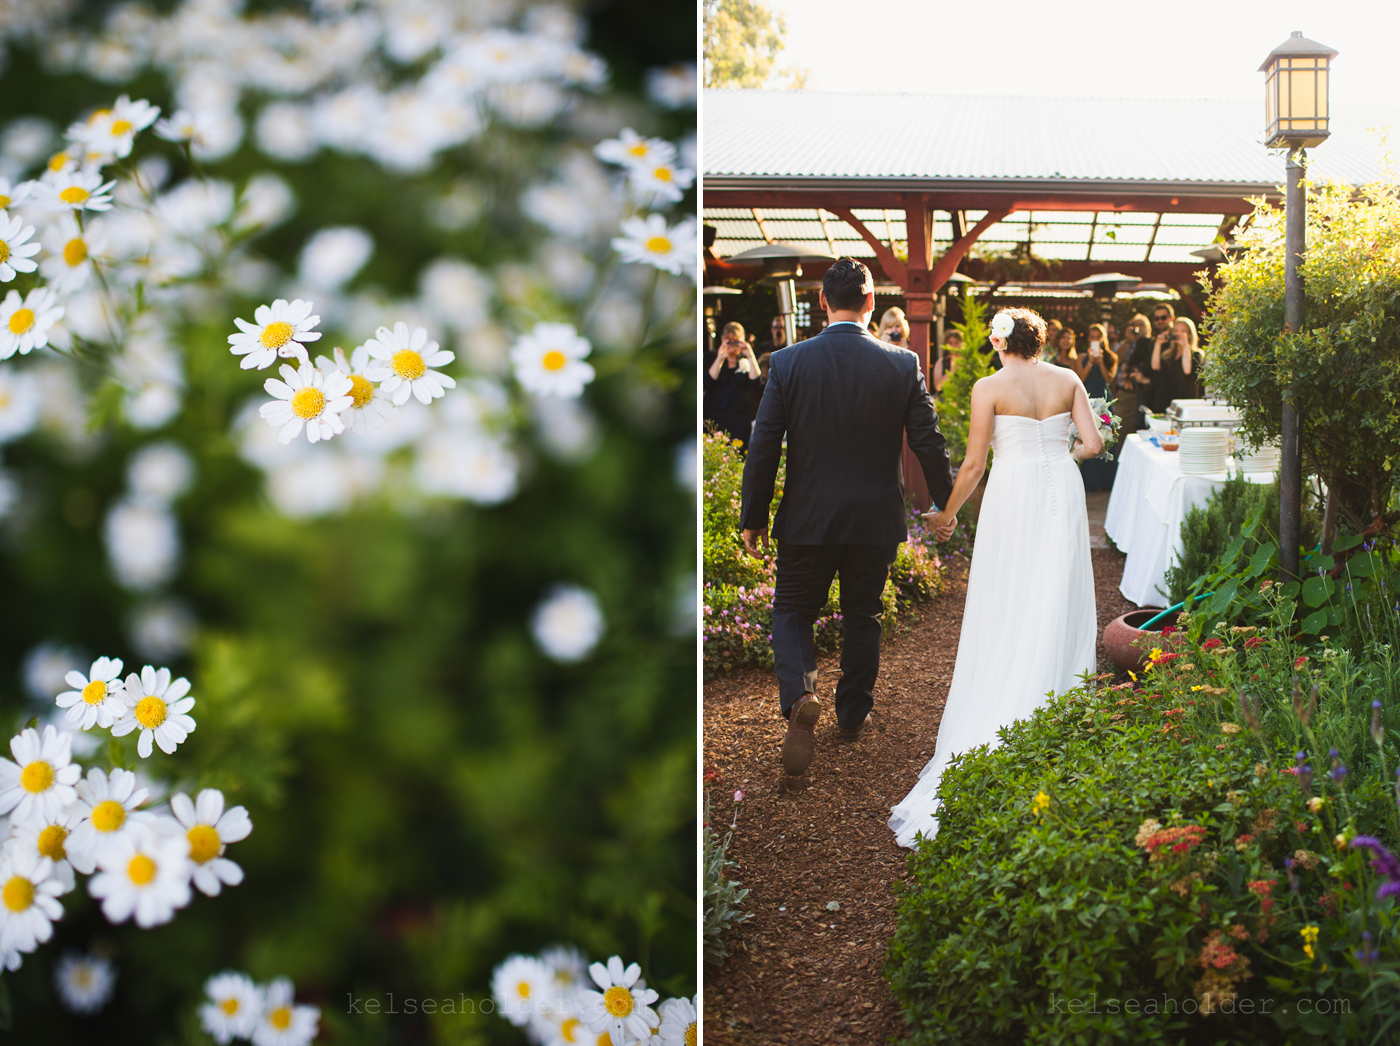 kelsea_holder_eco_outdoor_california_wedding054